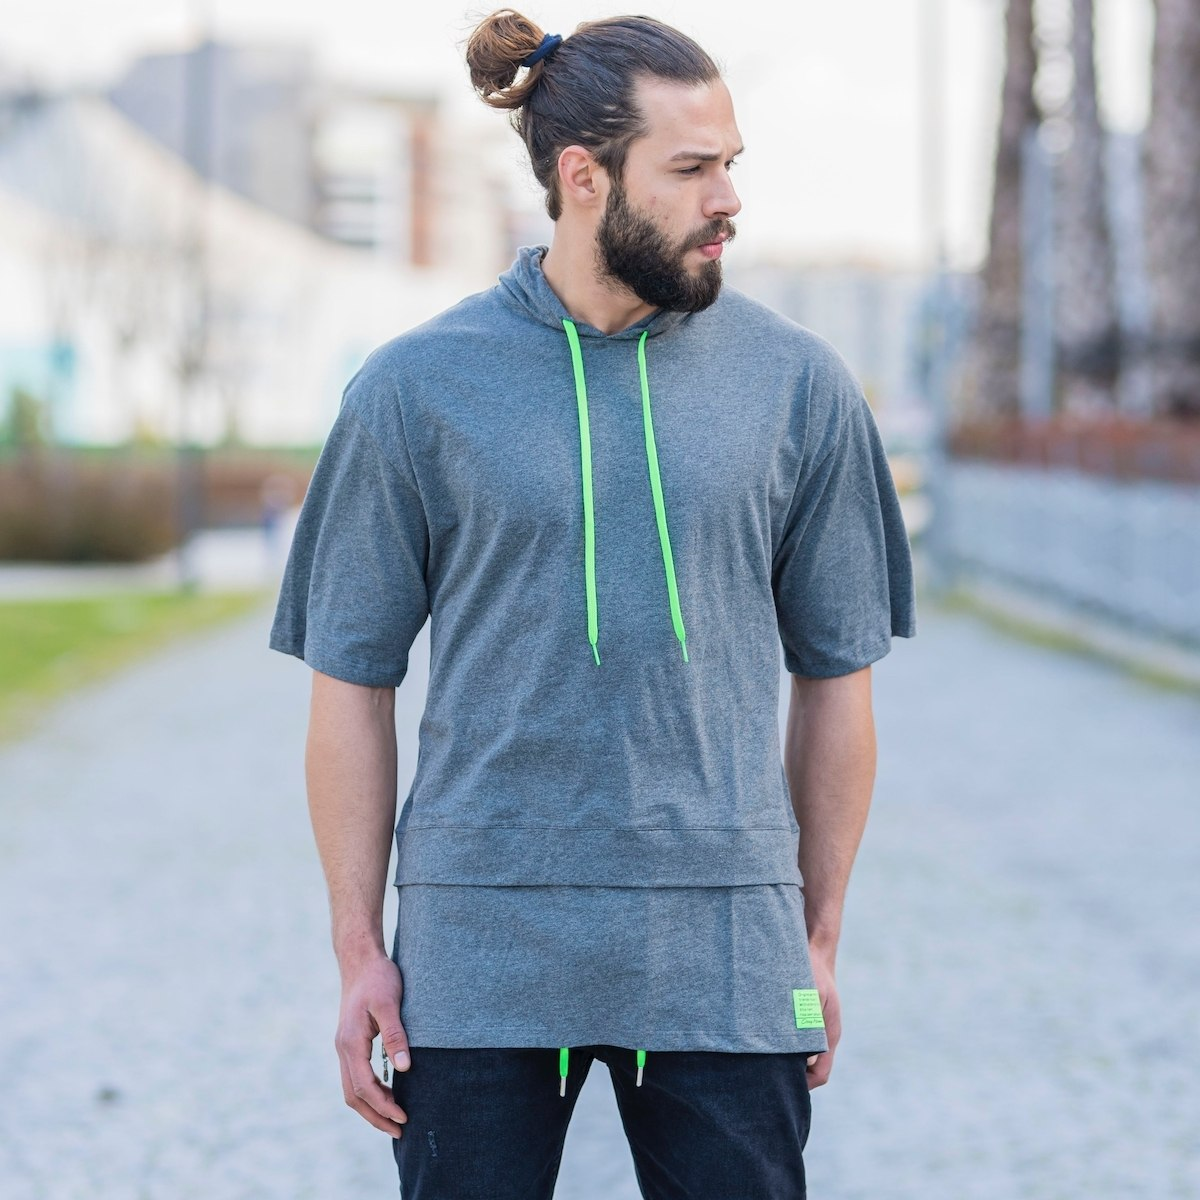 Men's Double-Tailed Hoodie In Neon-Gray